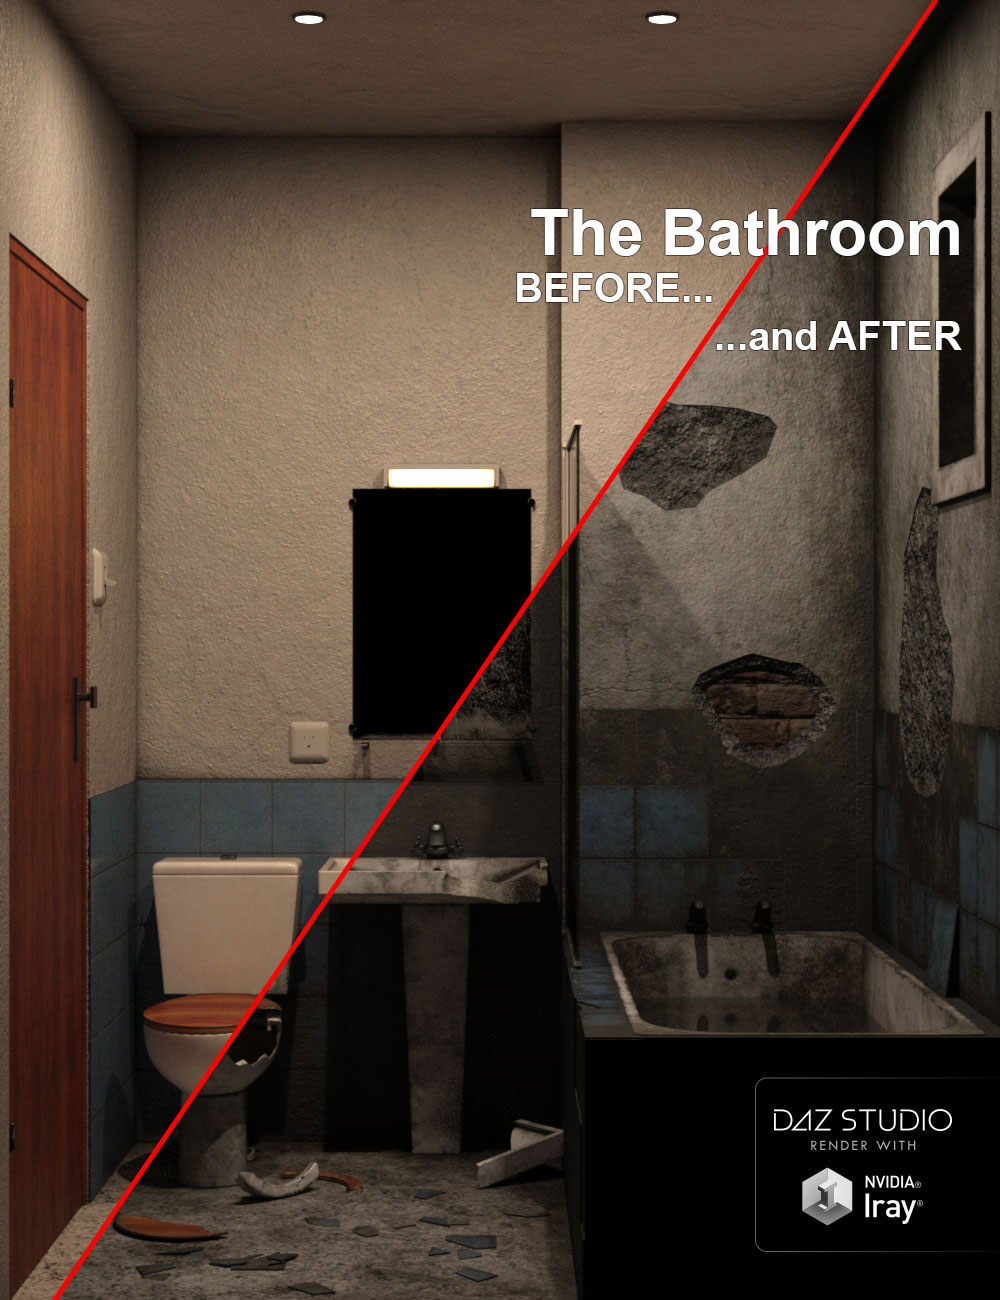 The Bathroom, BEFORE and AFTER…